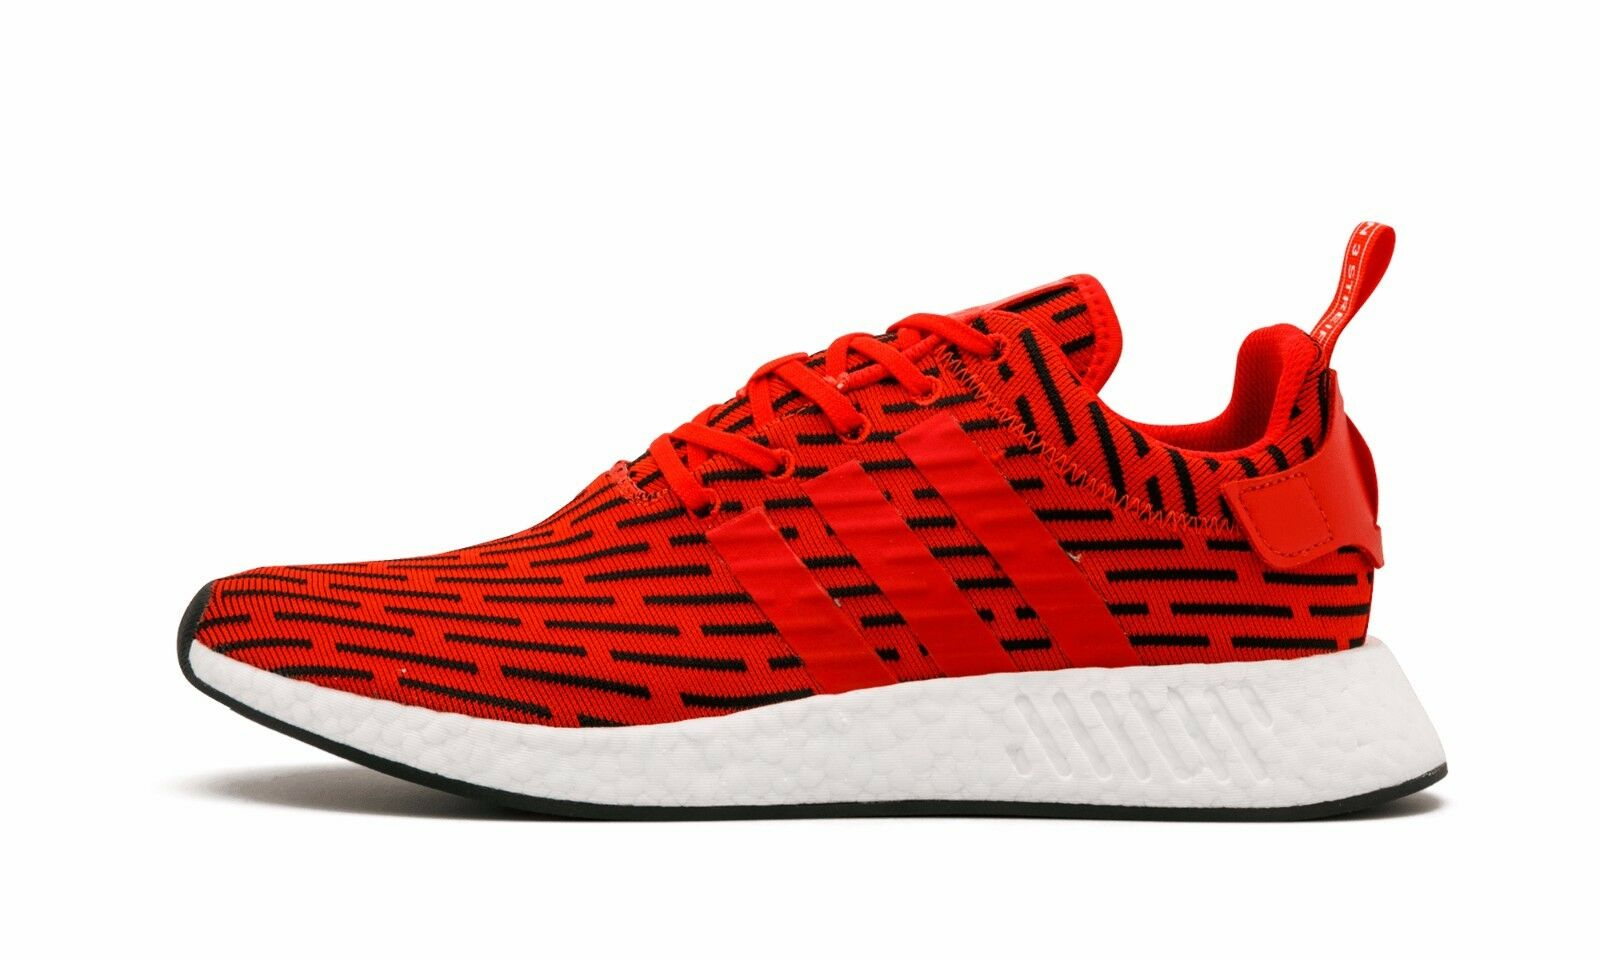 Adidas NMD R2 PK Primeknit Red White Size 13.5. BY2098 yeezy ultra boost